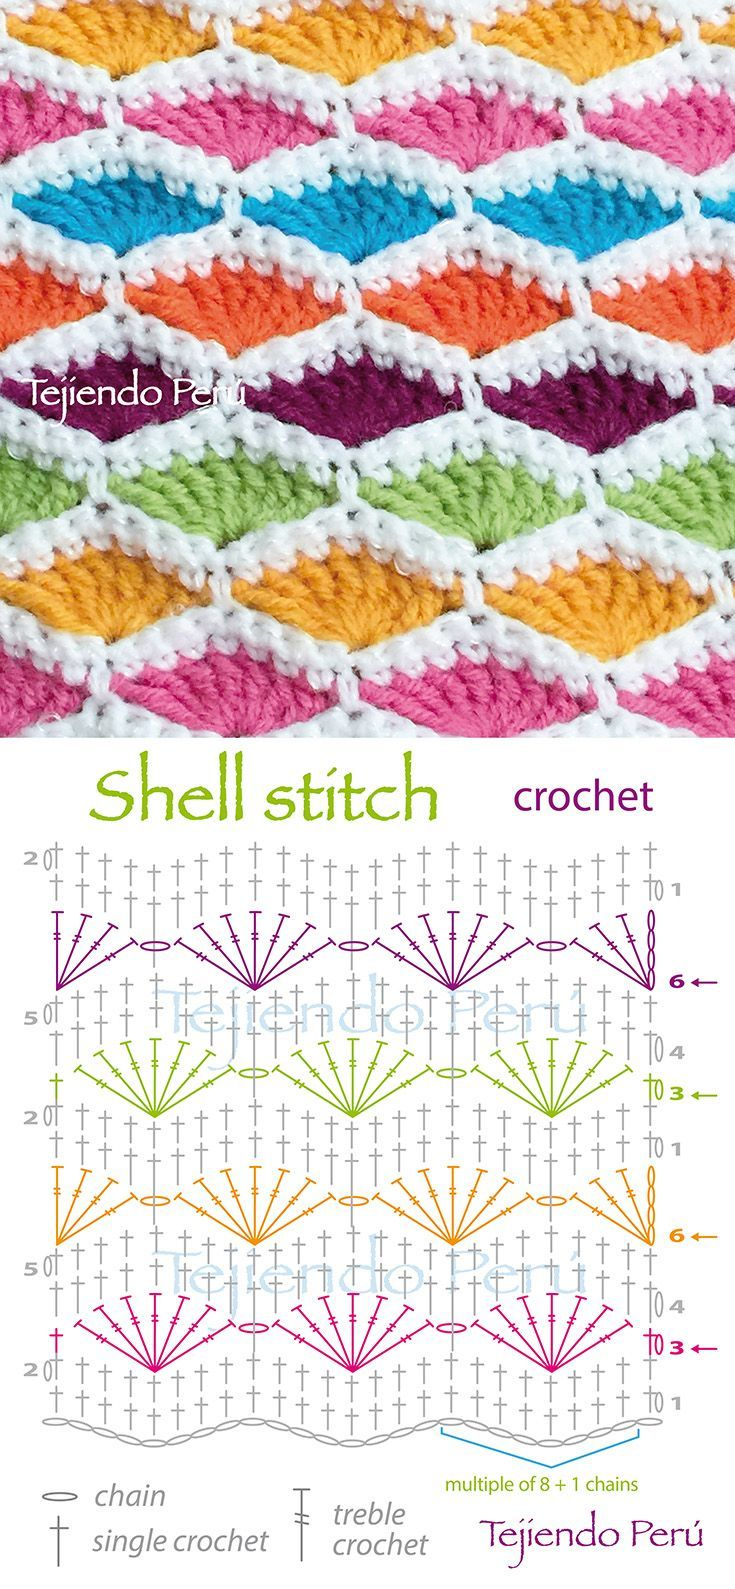 ... Patterns on Pinterest Free crochet, Afghans and Pattern library